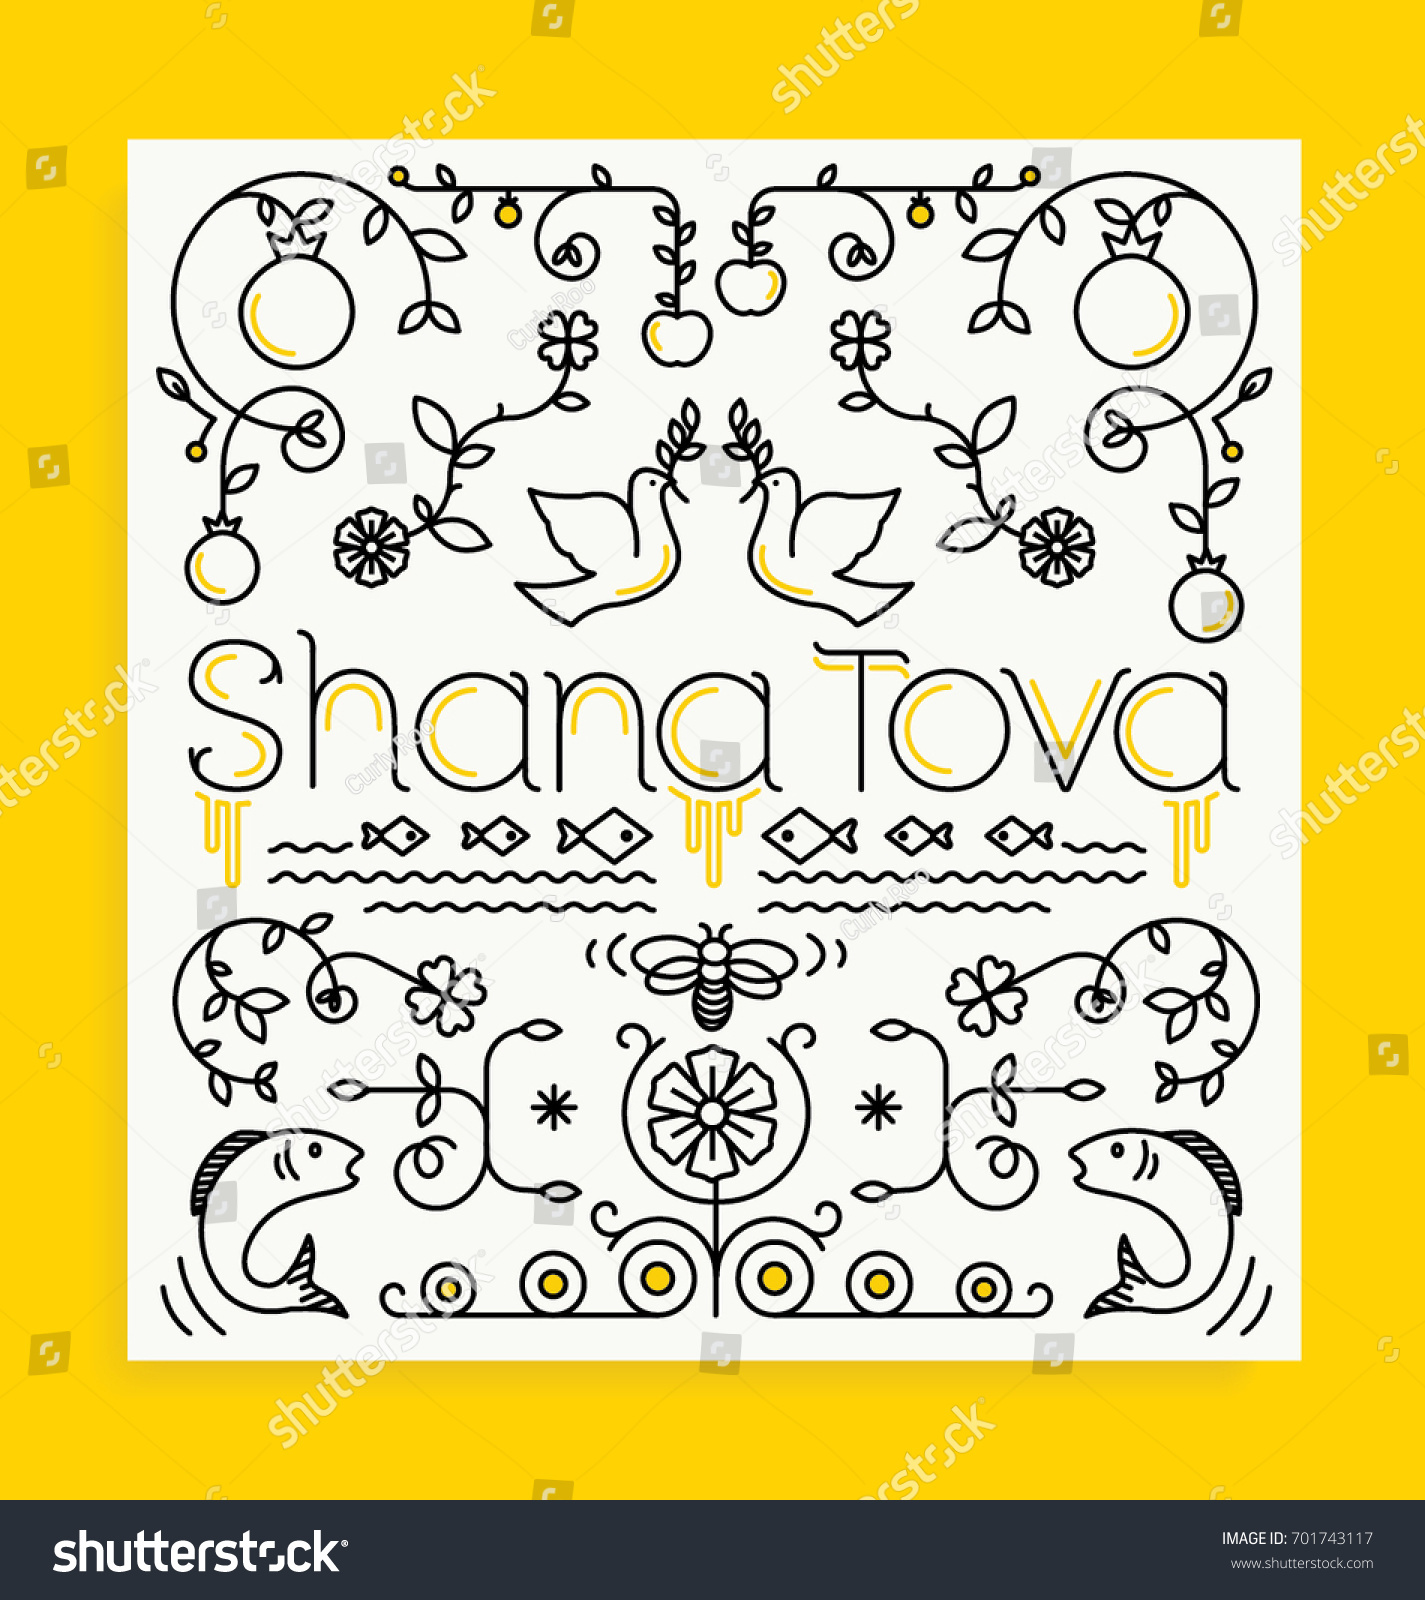 Shana tova card rosh hashanah greeting stock vector 701743117 shana tova card rosh hashanah greeting card jewish new year editable vector illustration kristyandbryce Choice Image